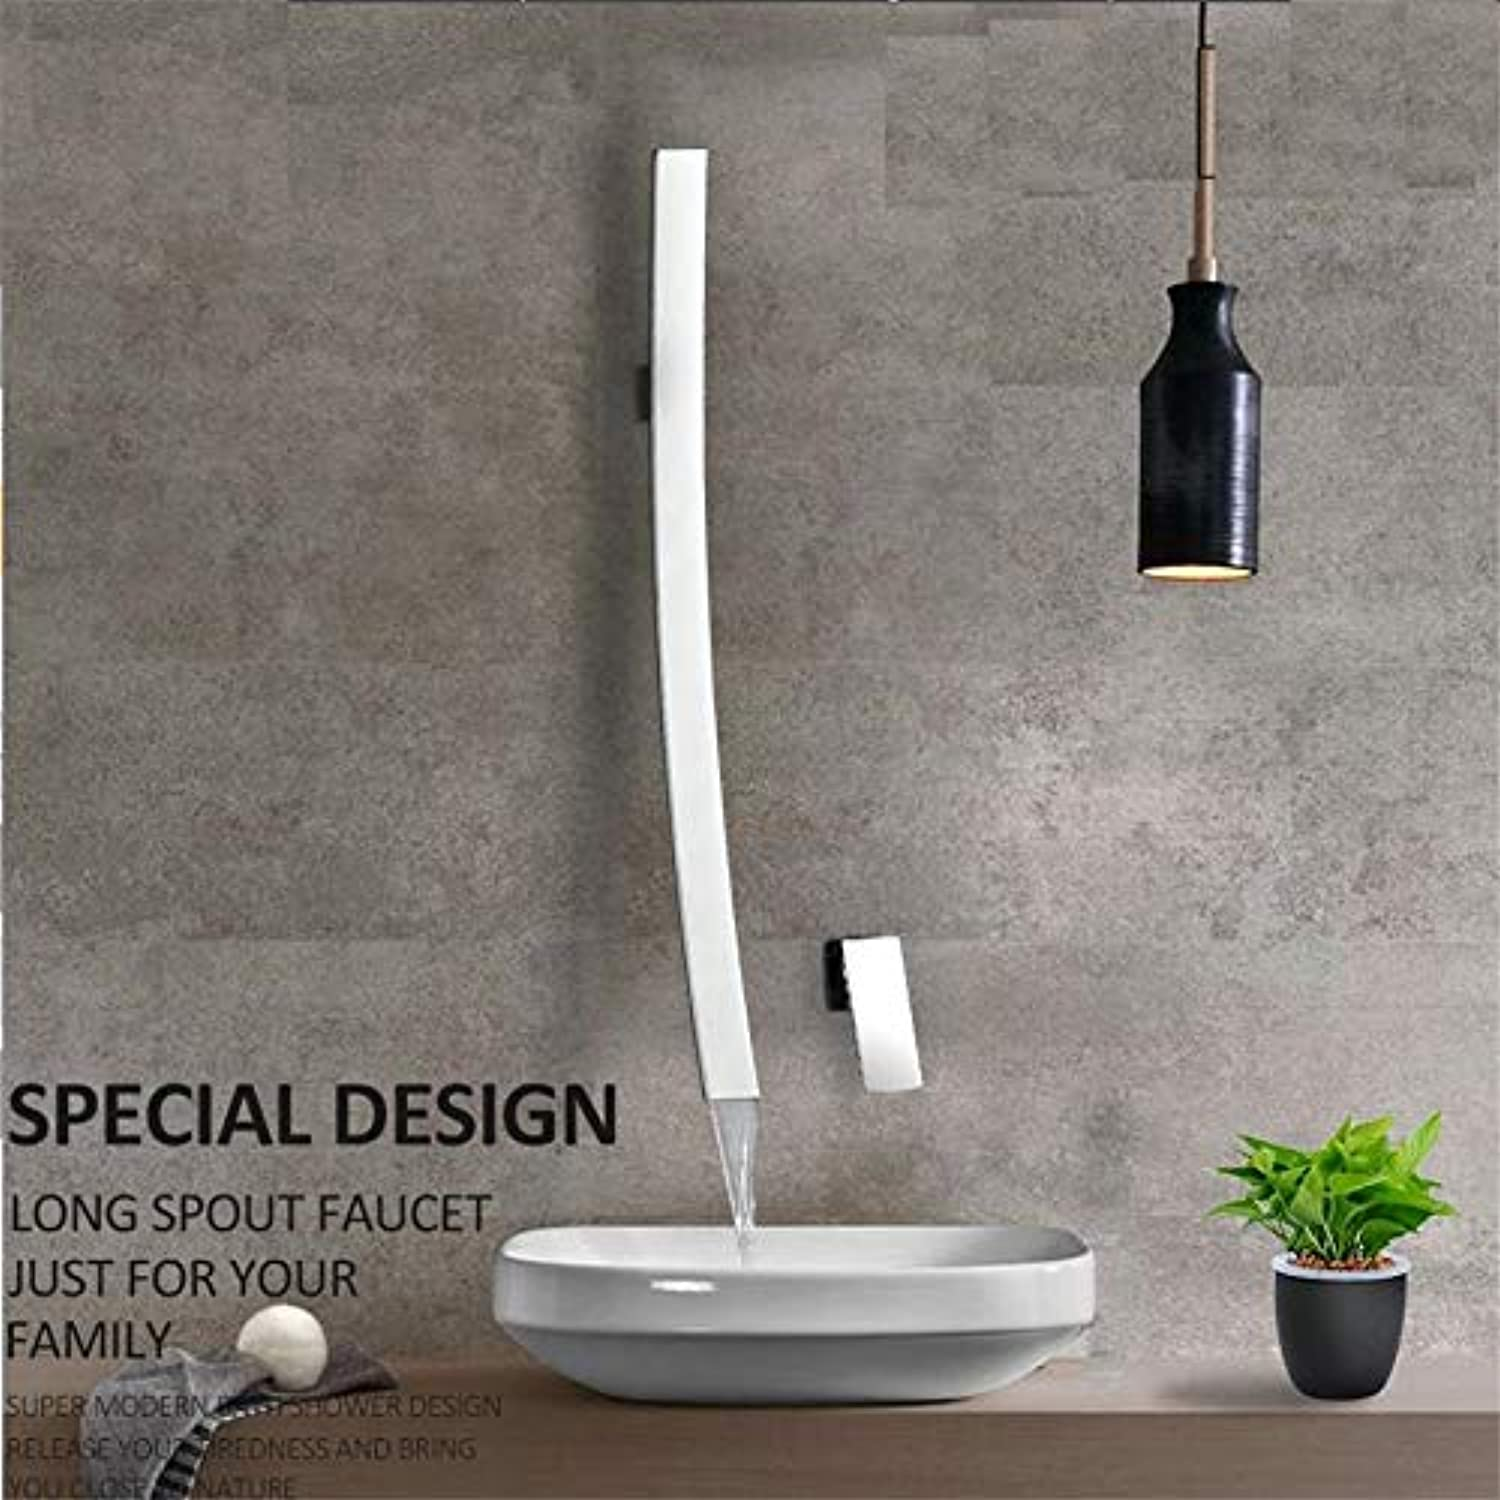 Faucet Basin Faucetmodern Chrome 27.5 Inch Waterfall Spout Wall Mount Basin Faucet Single Handle Mixer Tap Concealed Bathroom Sink